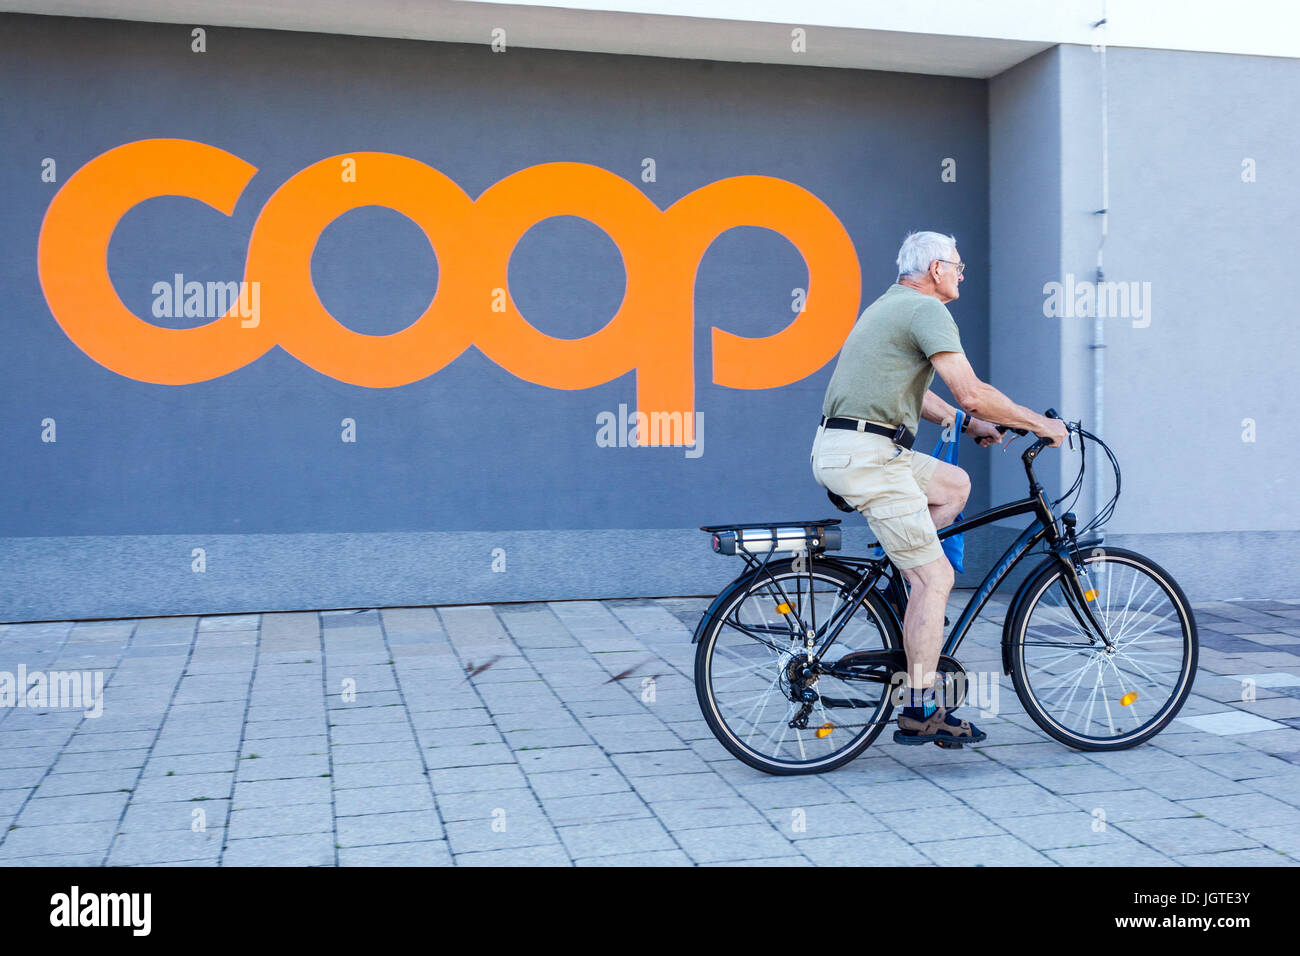 Supermarket retail chain Coop, logo, sign, Czech Republic - Stock Image